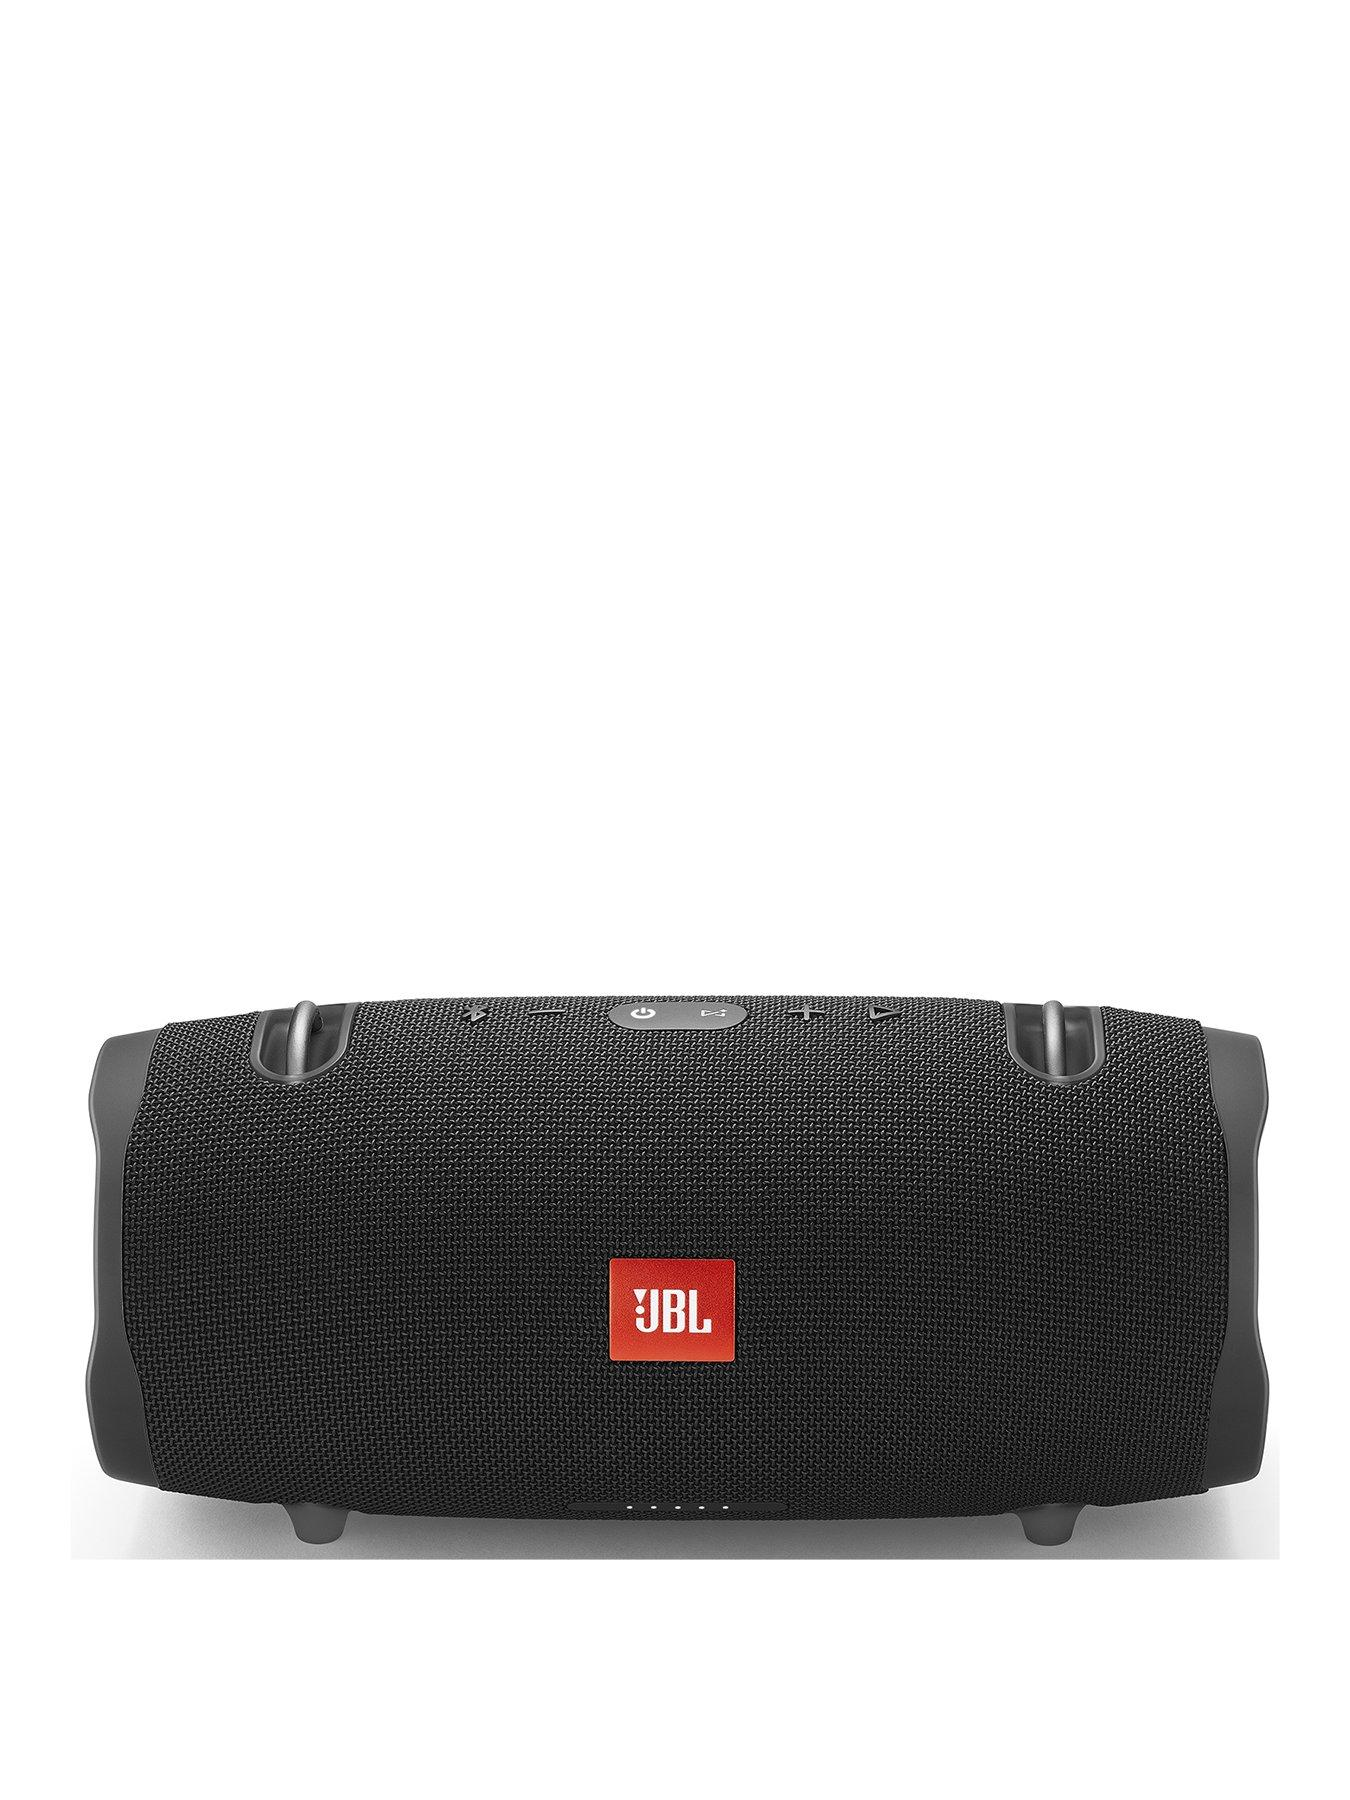 jbl portable speakers with hand strap